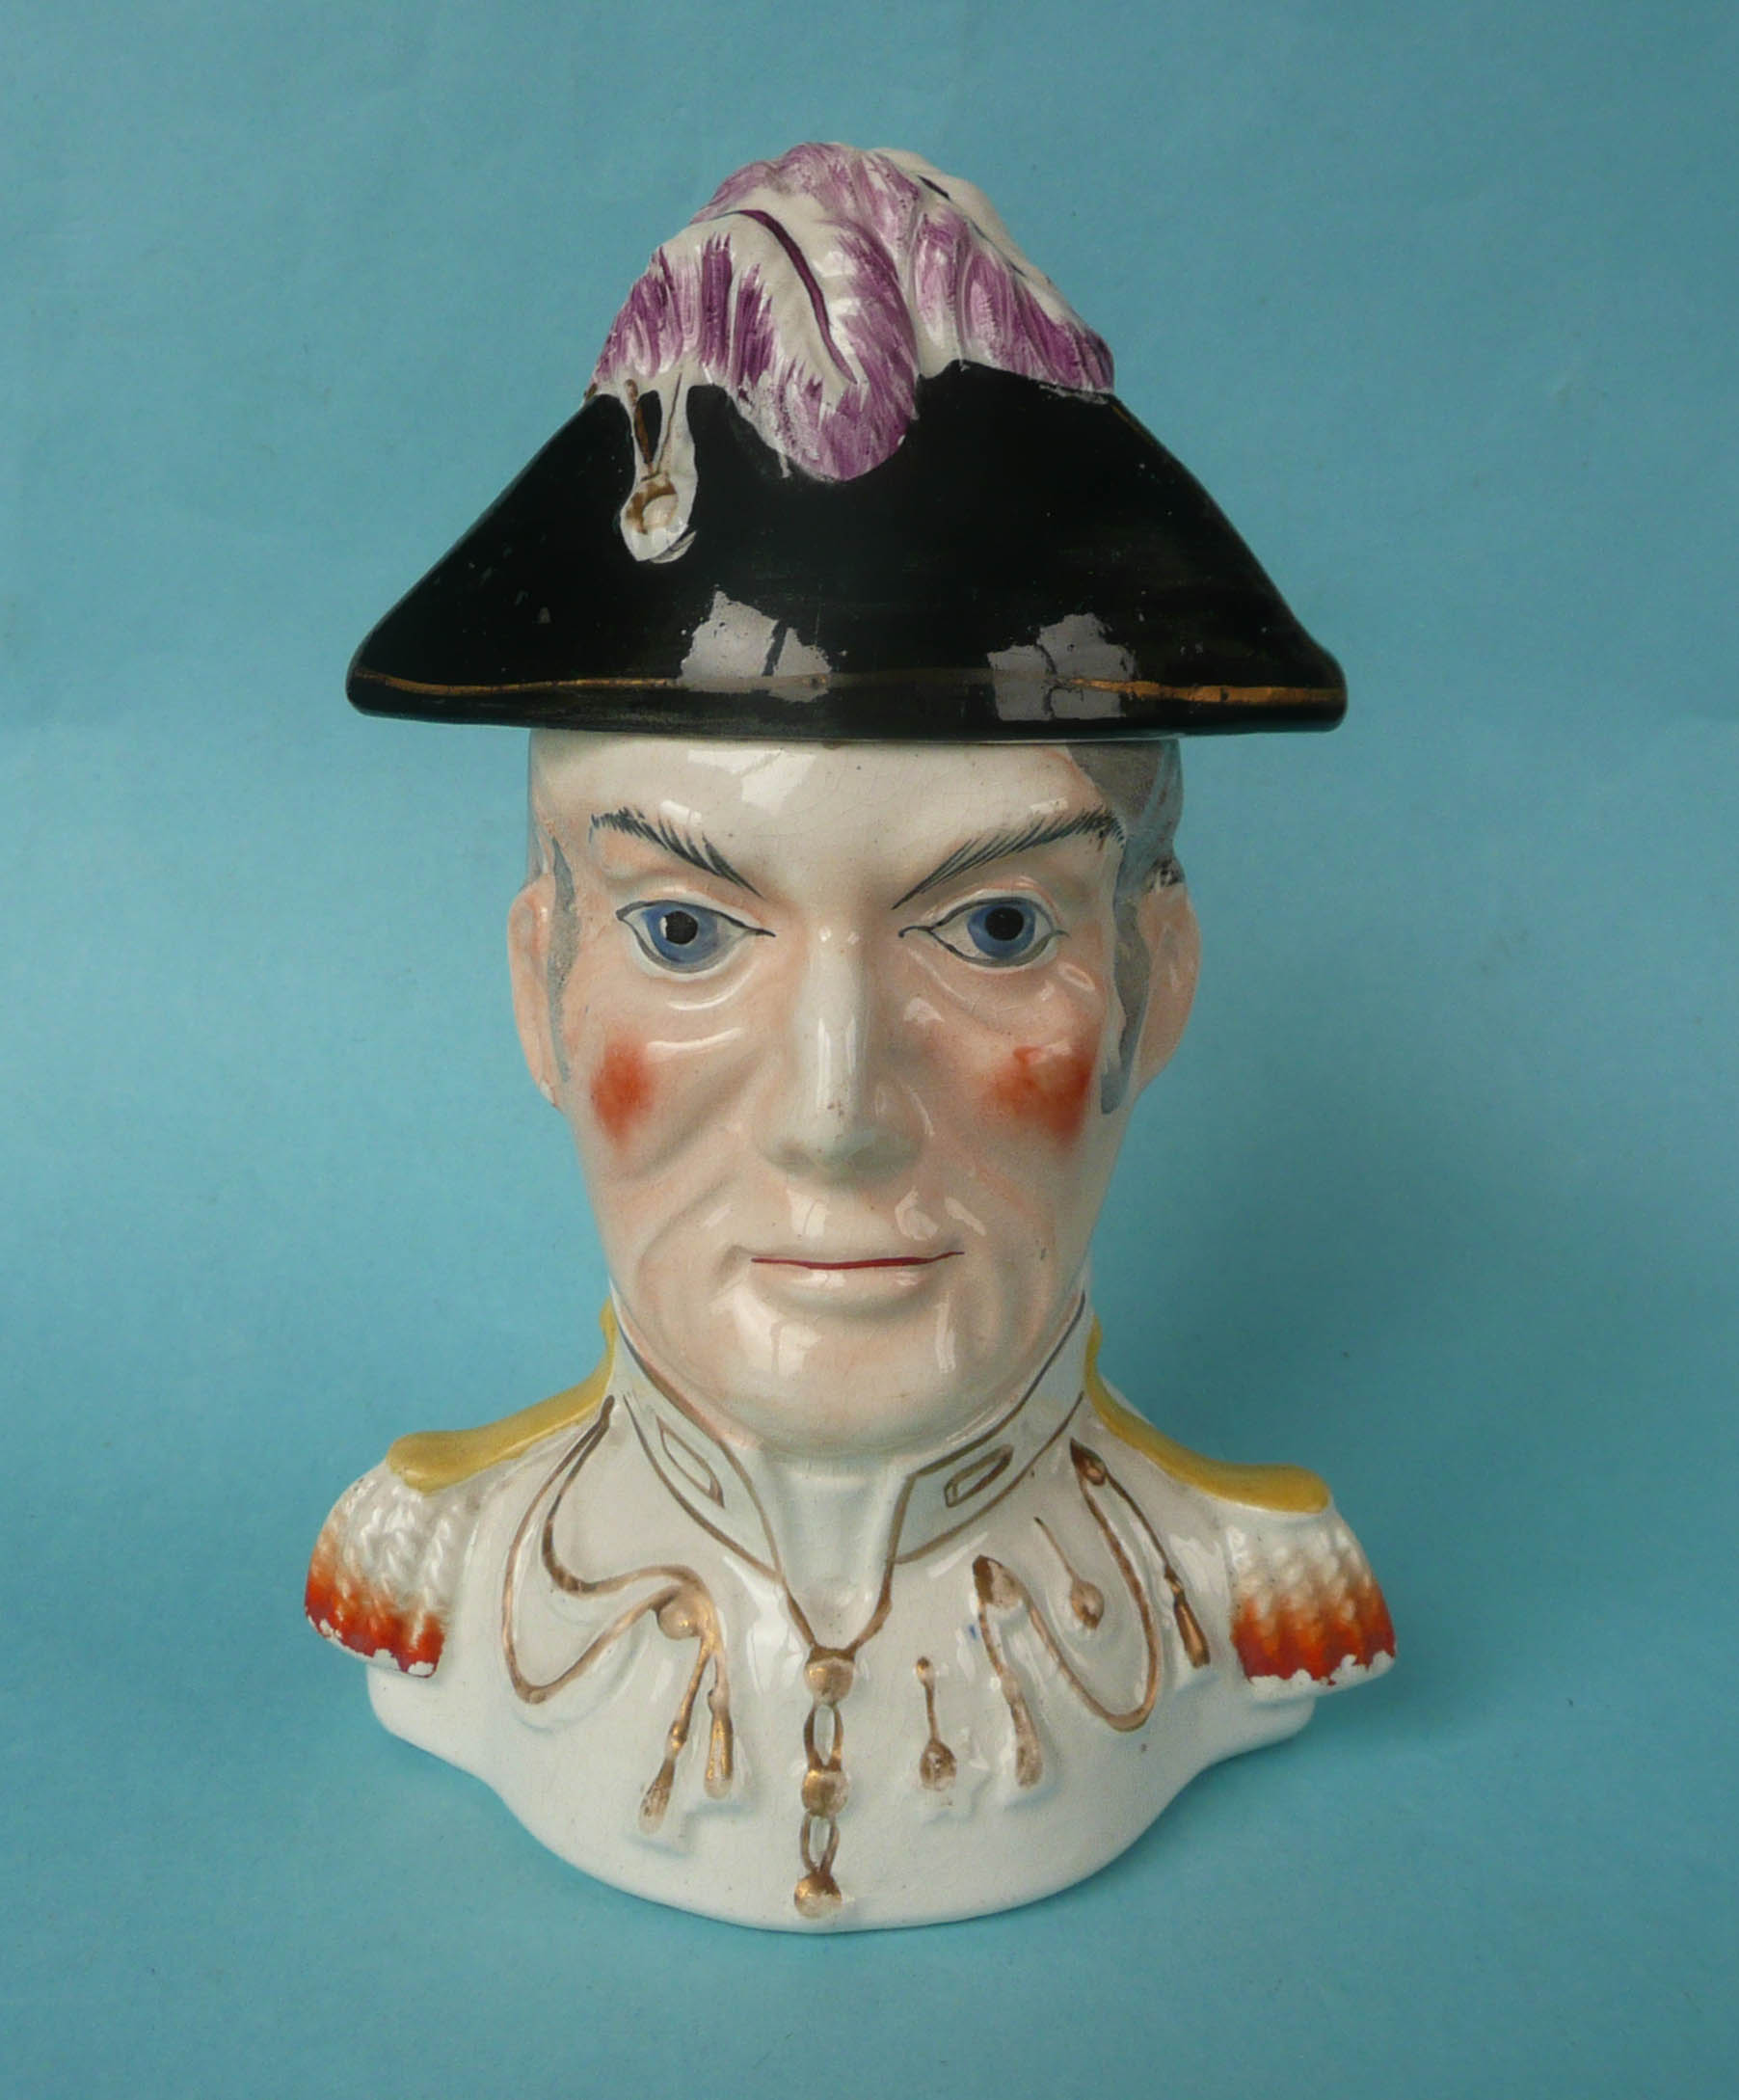 Lot 25 - Wellington: a Staffordshire pottery jar and cover modelled as a portrait bust depicted in uniform,